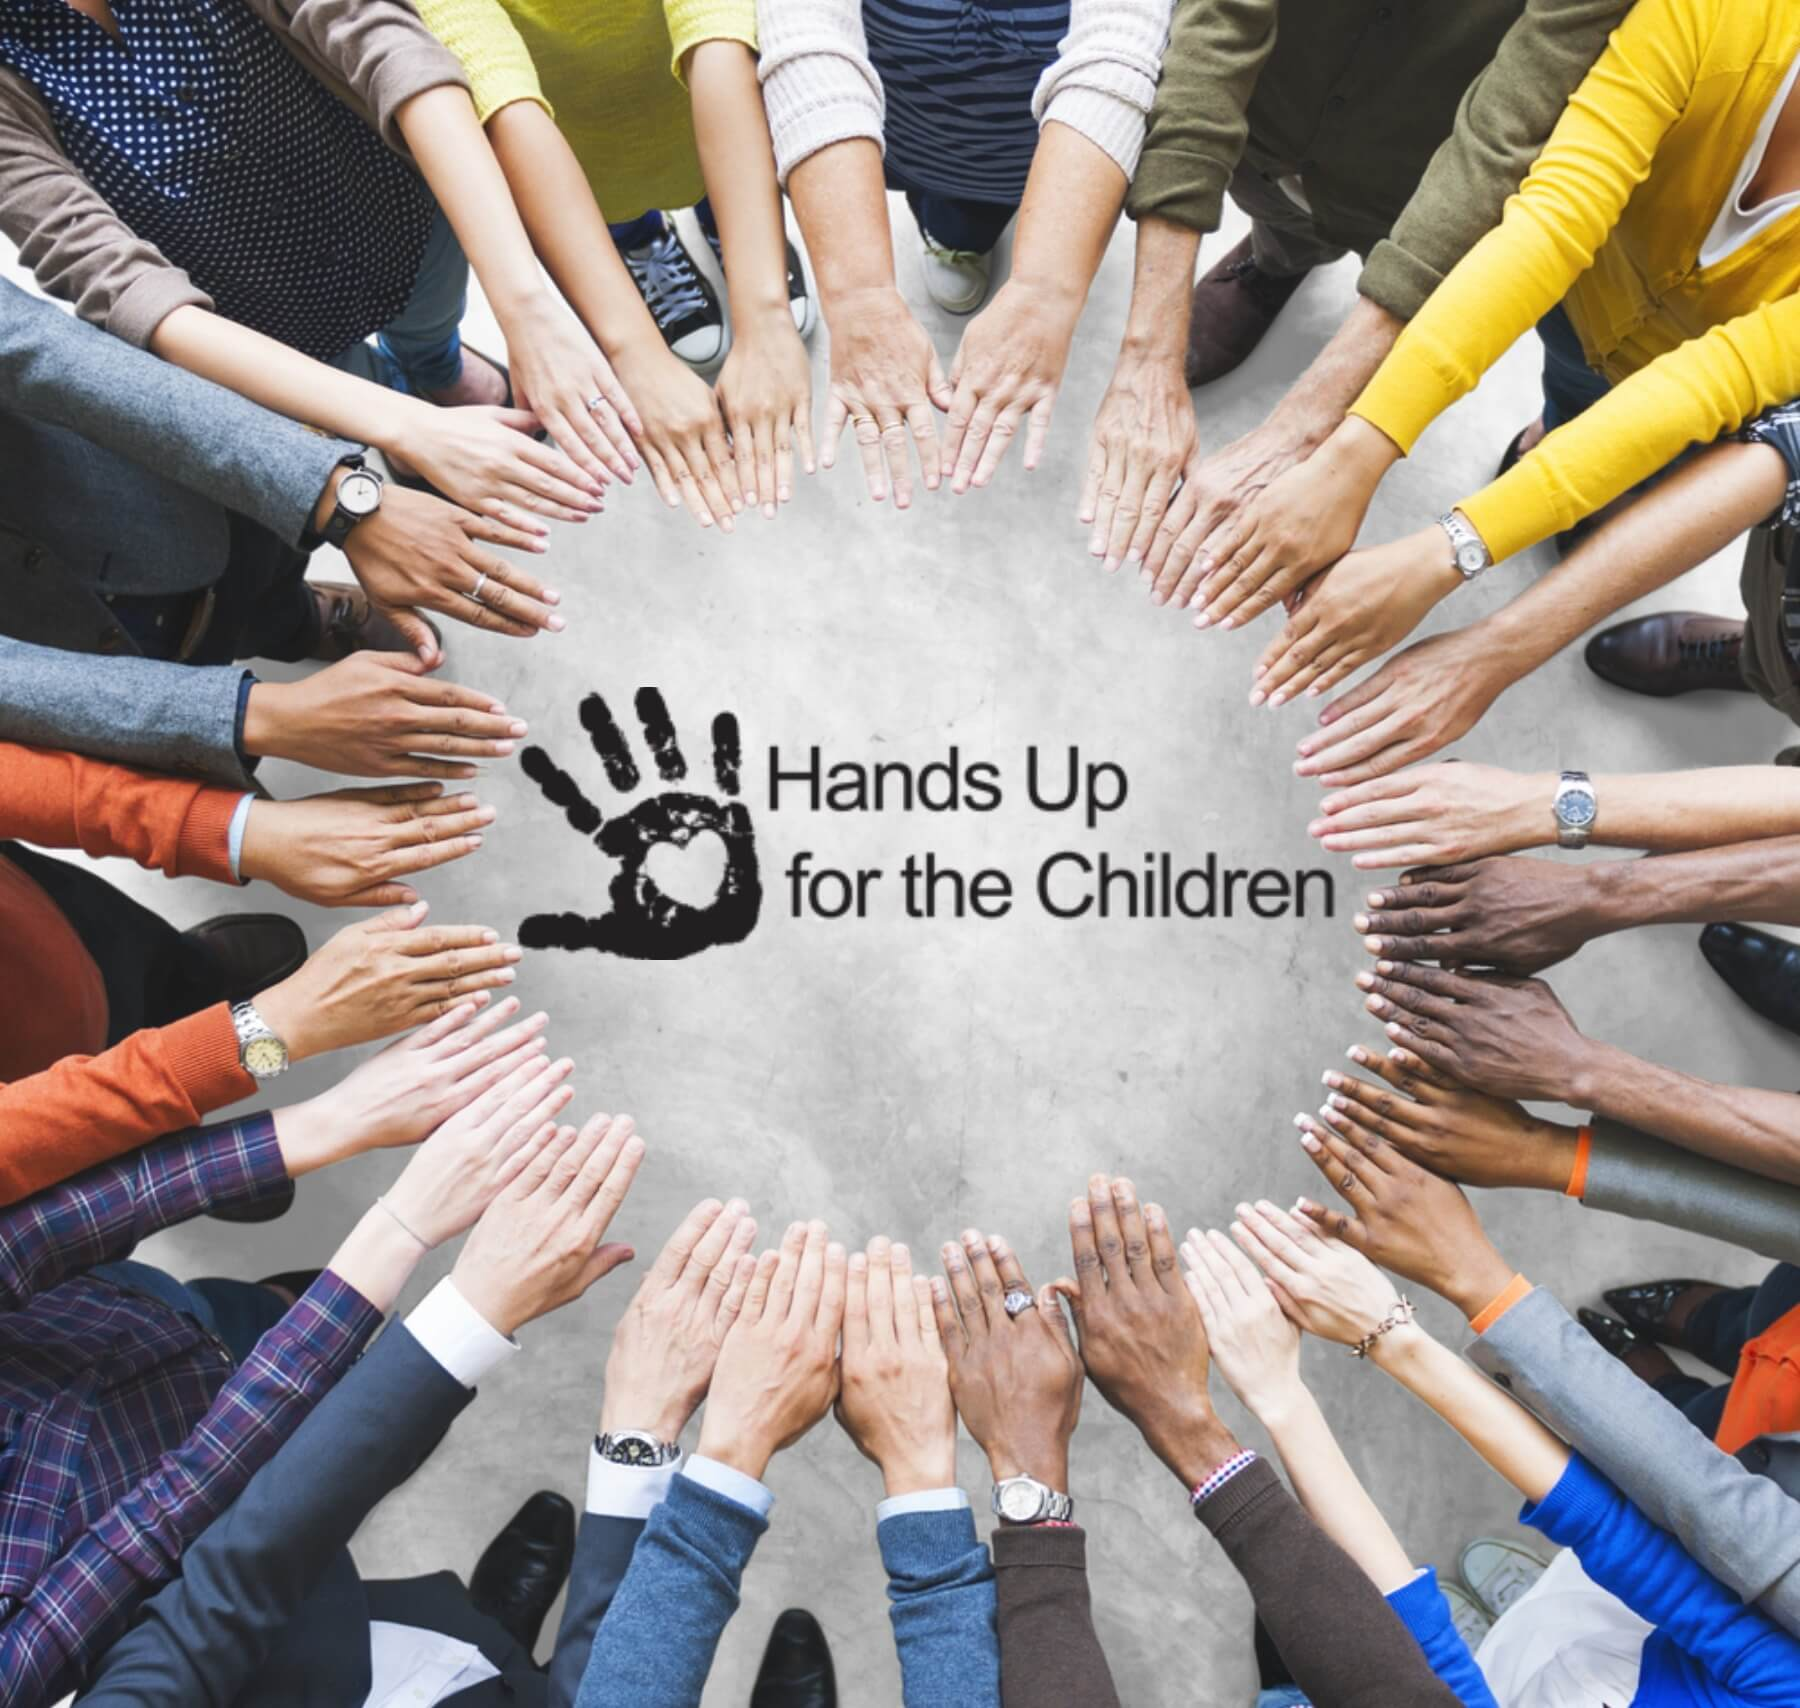 Hands Up for the Children